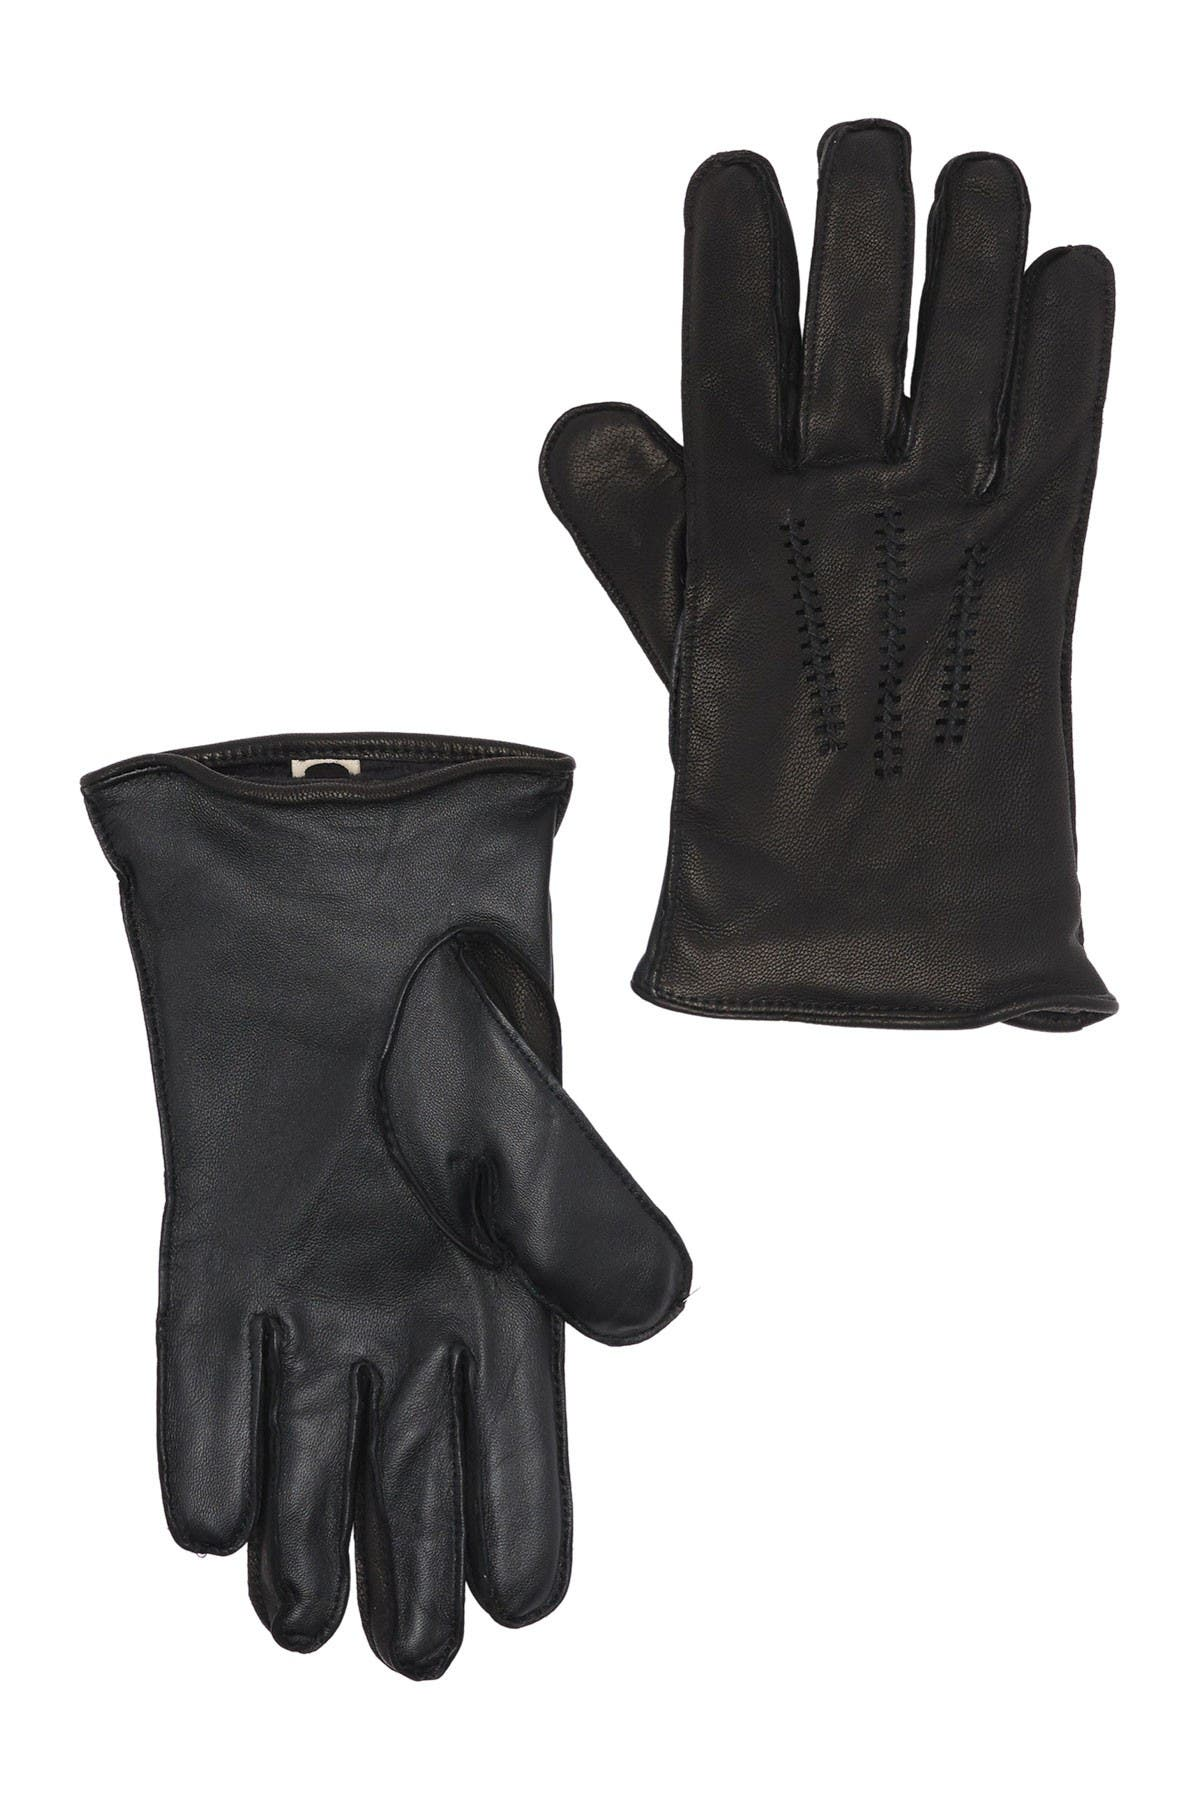 Image of UGG Wrangell Faux Fur Lined Smart Gloves